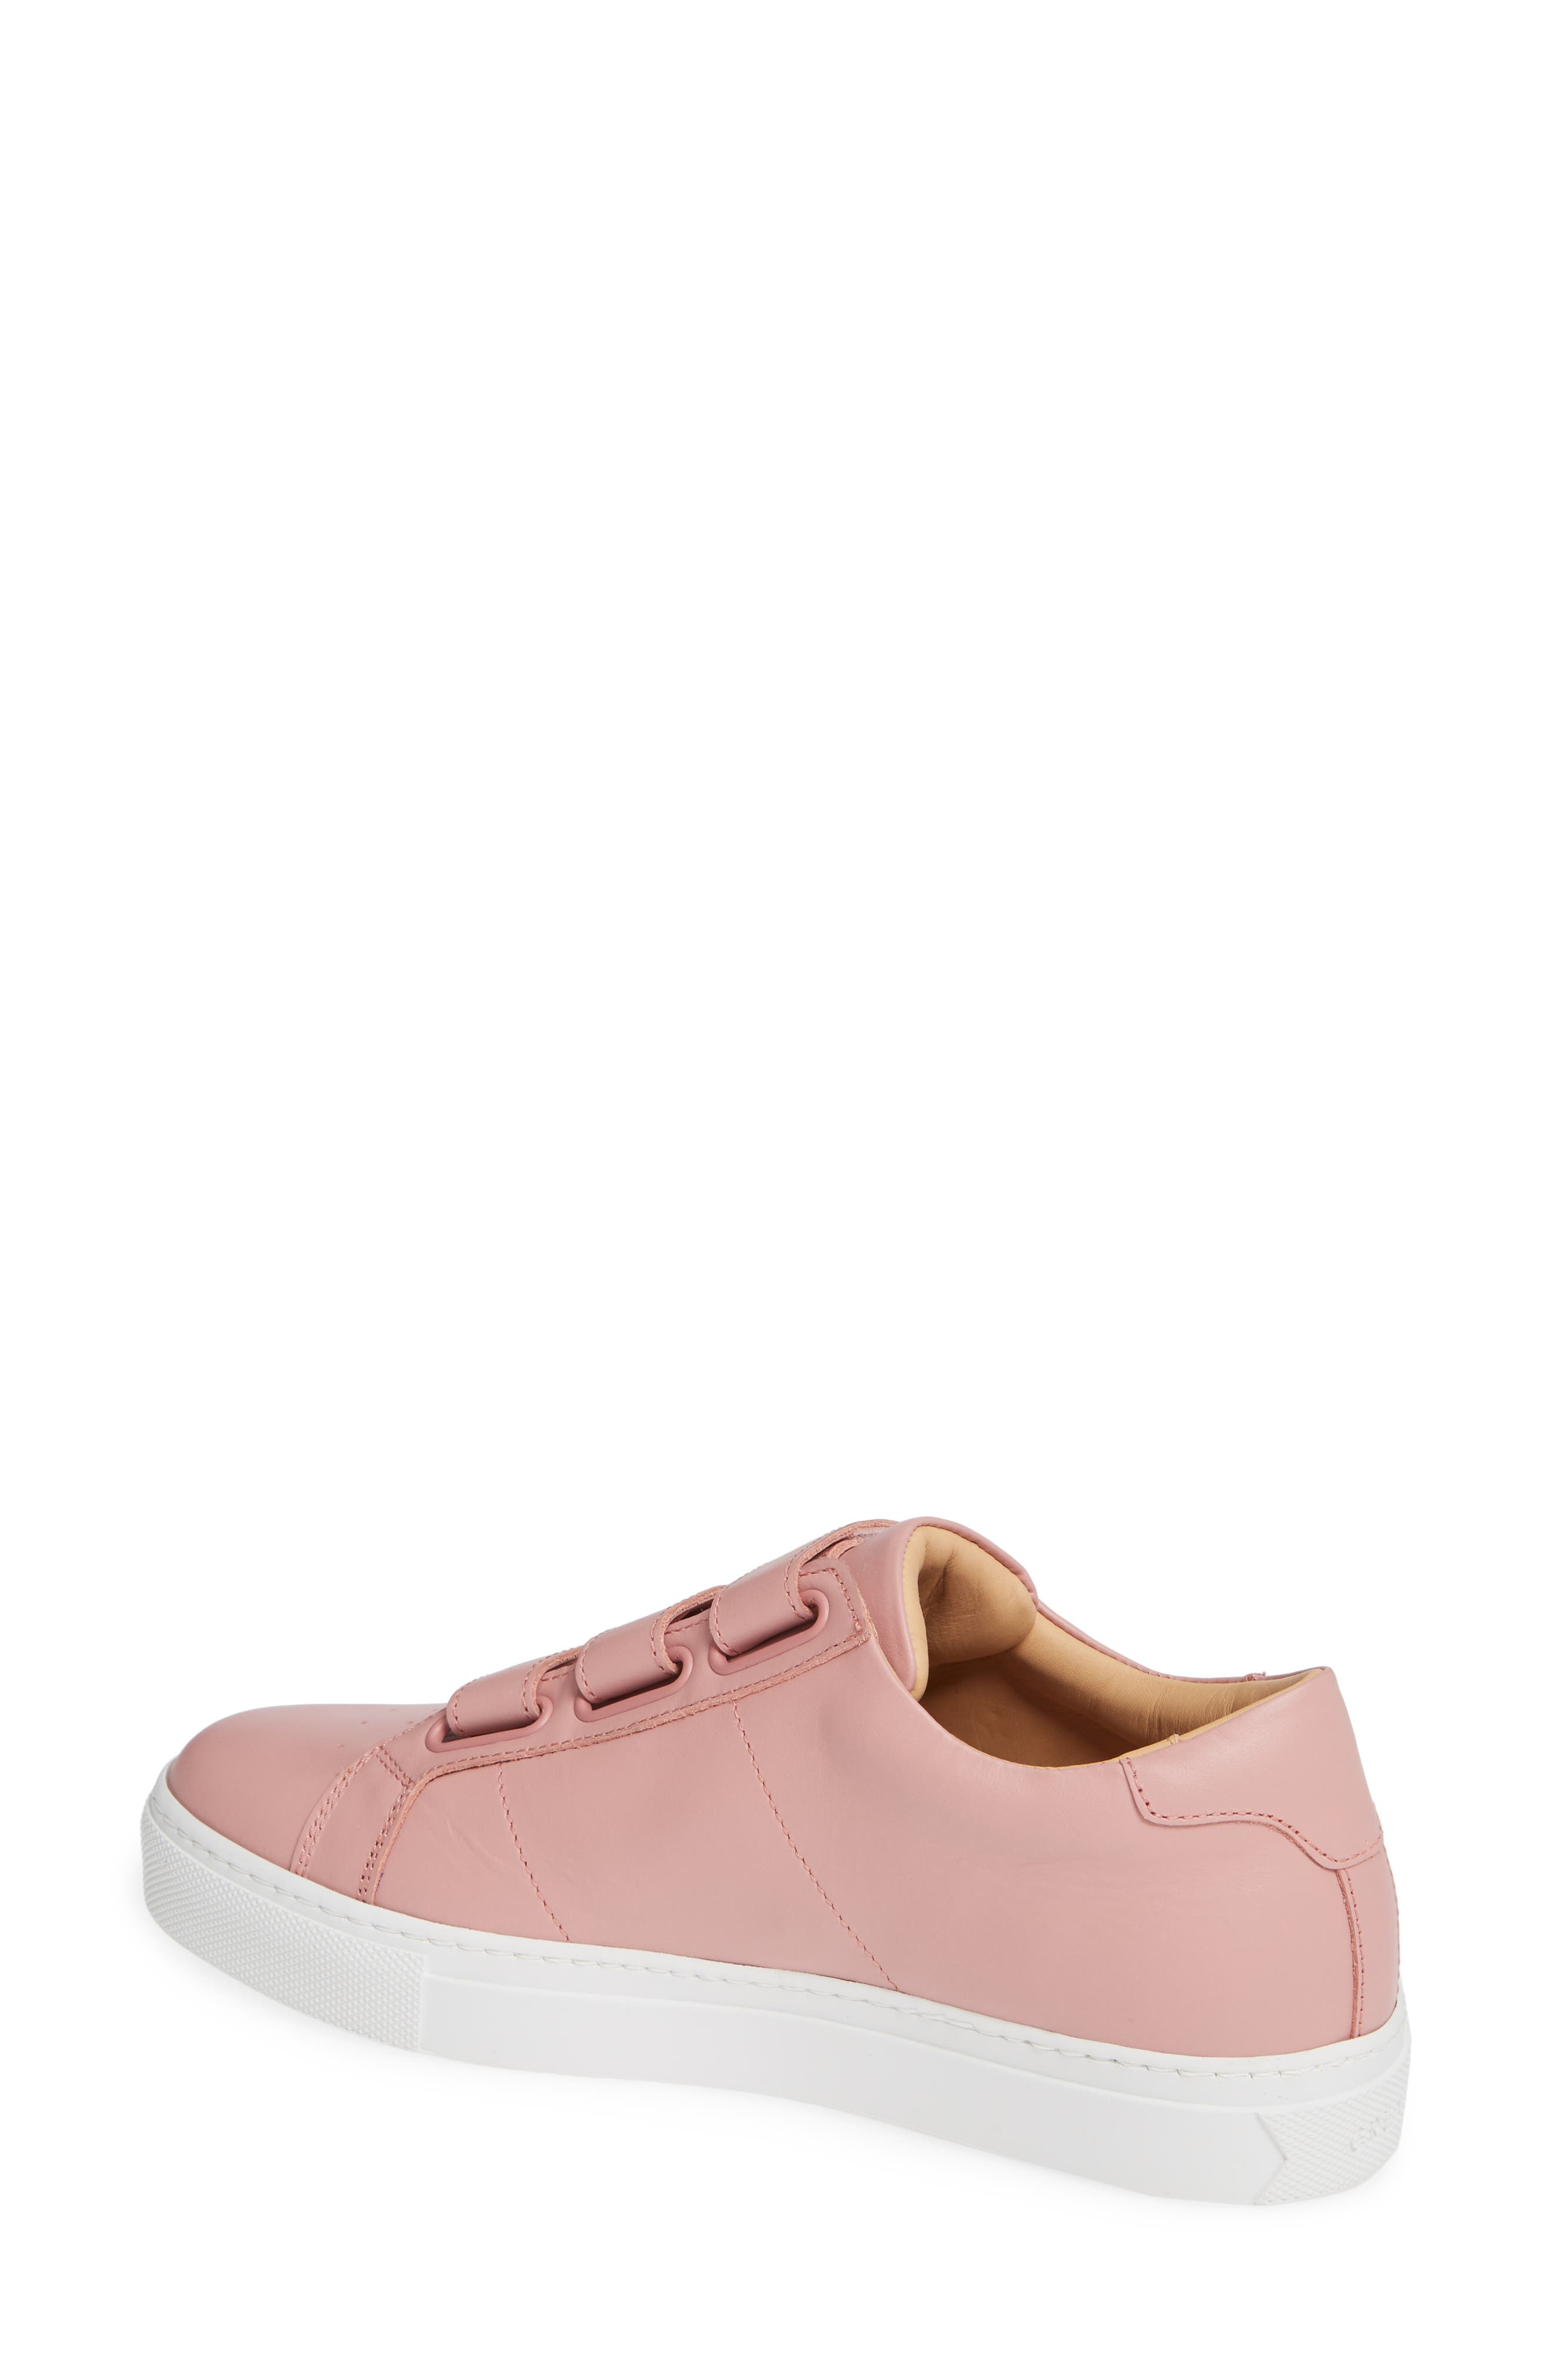 Nick Wooster x GREATS Wooster Royale Sneaker,                             Alternate thumbnail 2, color,                             651